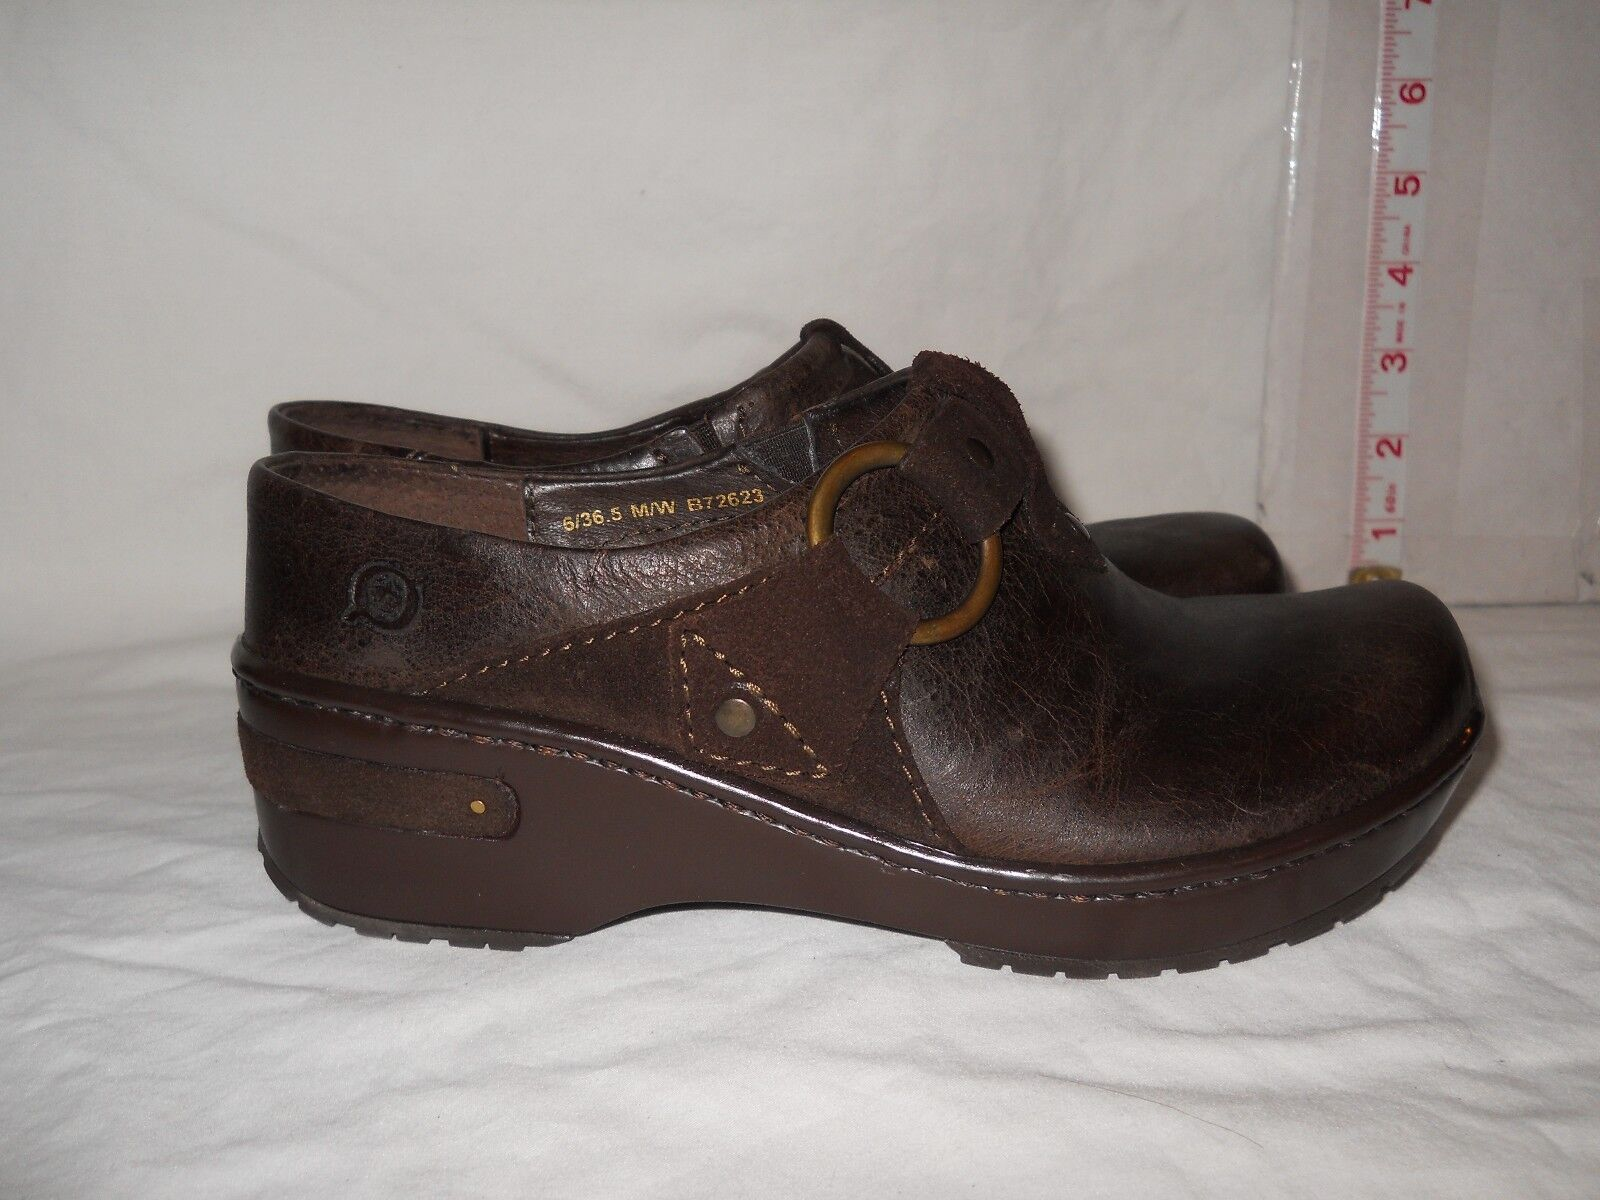 Born New femmes Flor Dark marron Clogs 6 M chaussures NWOB